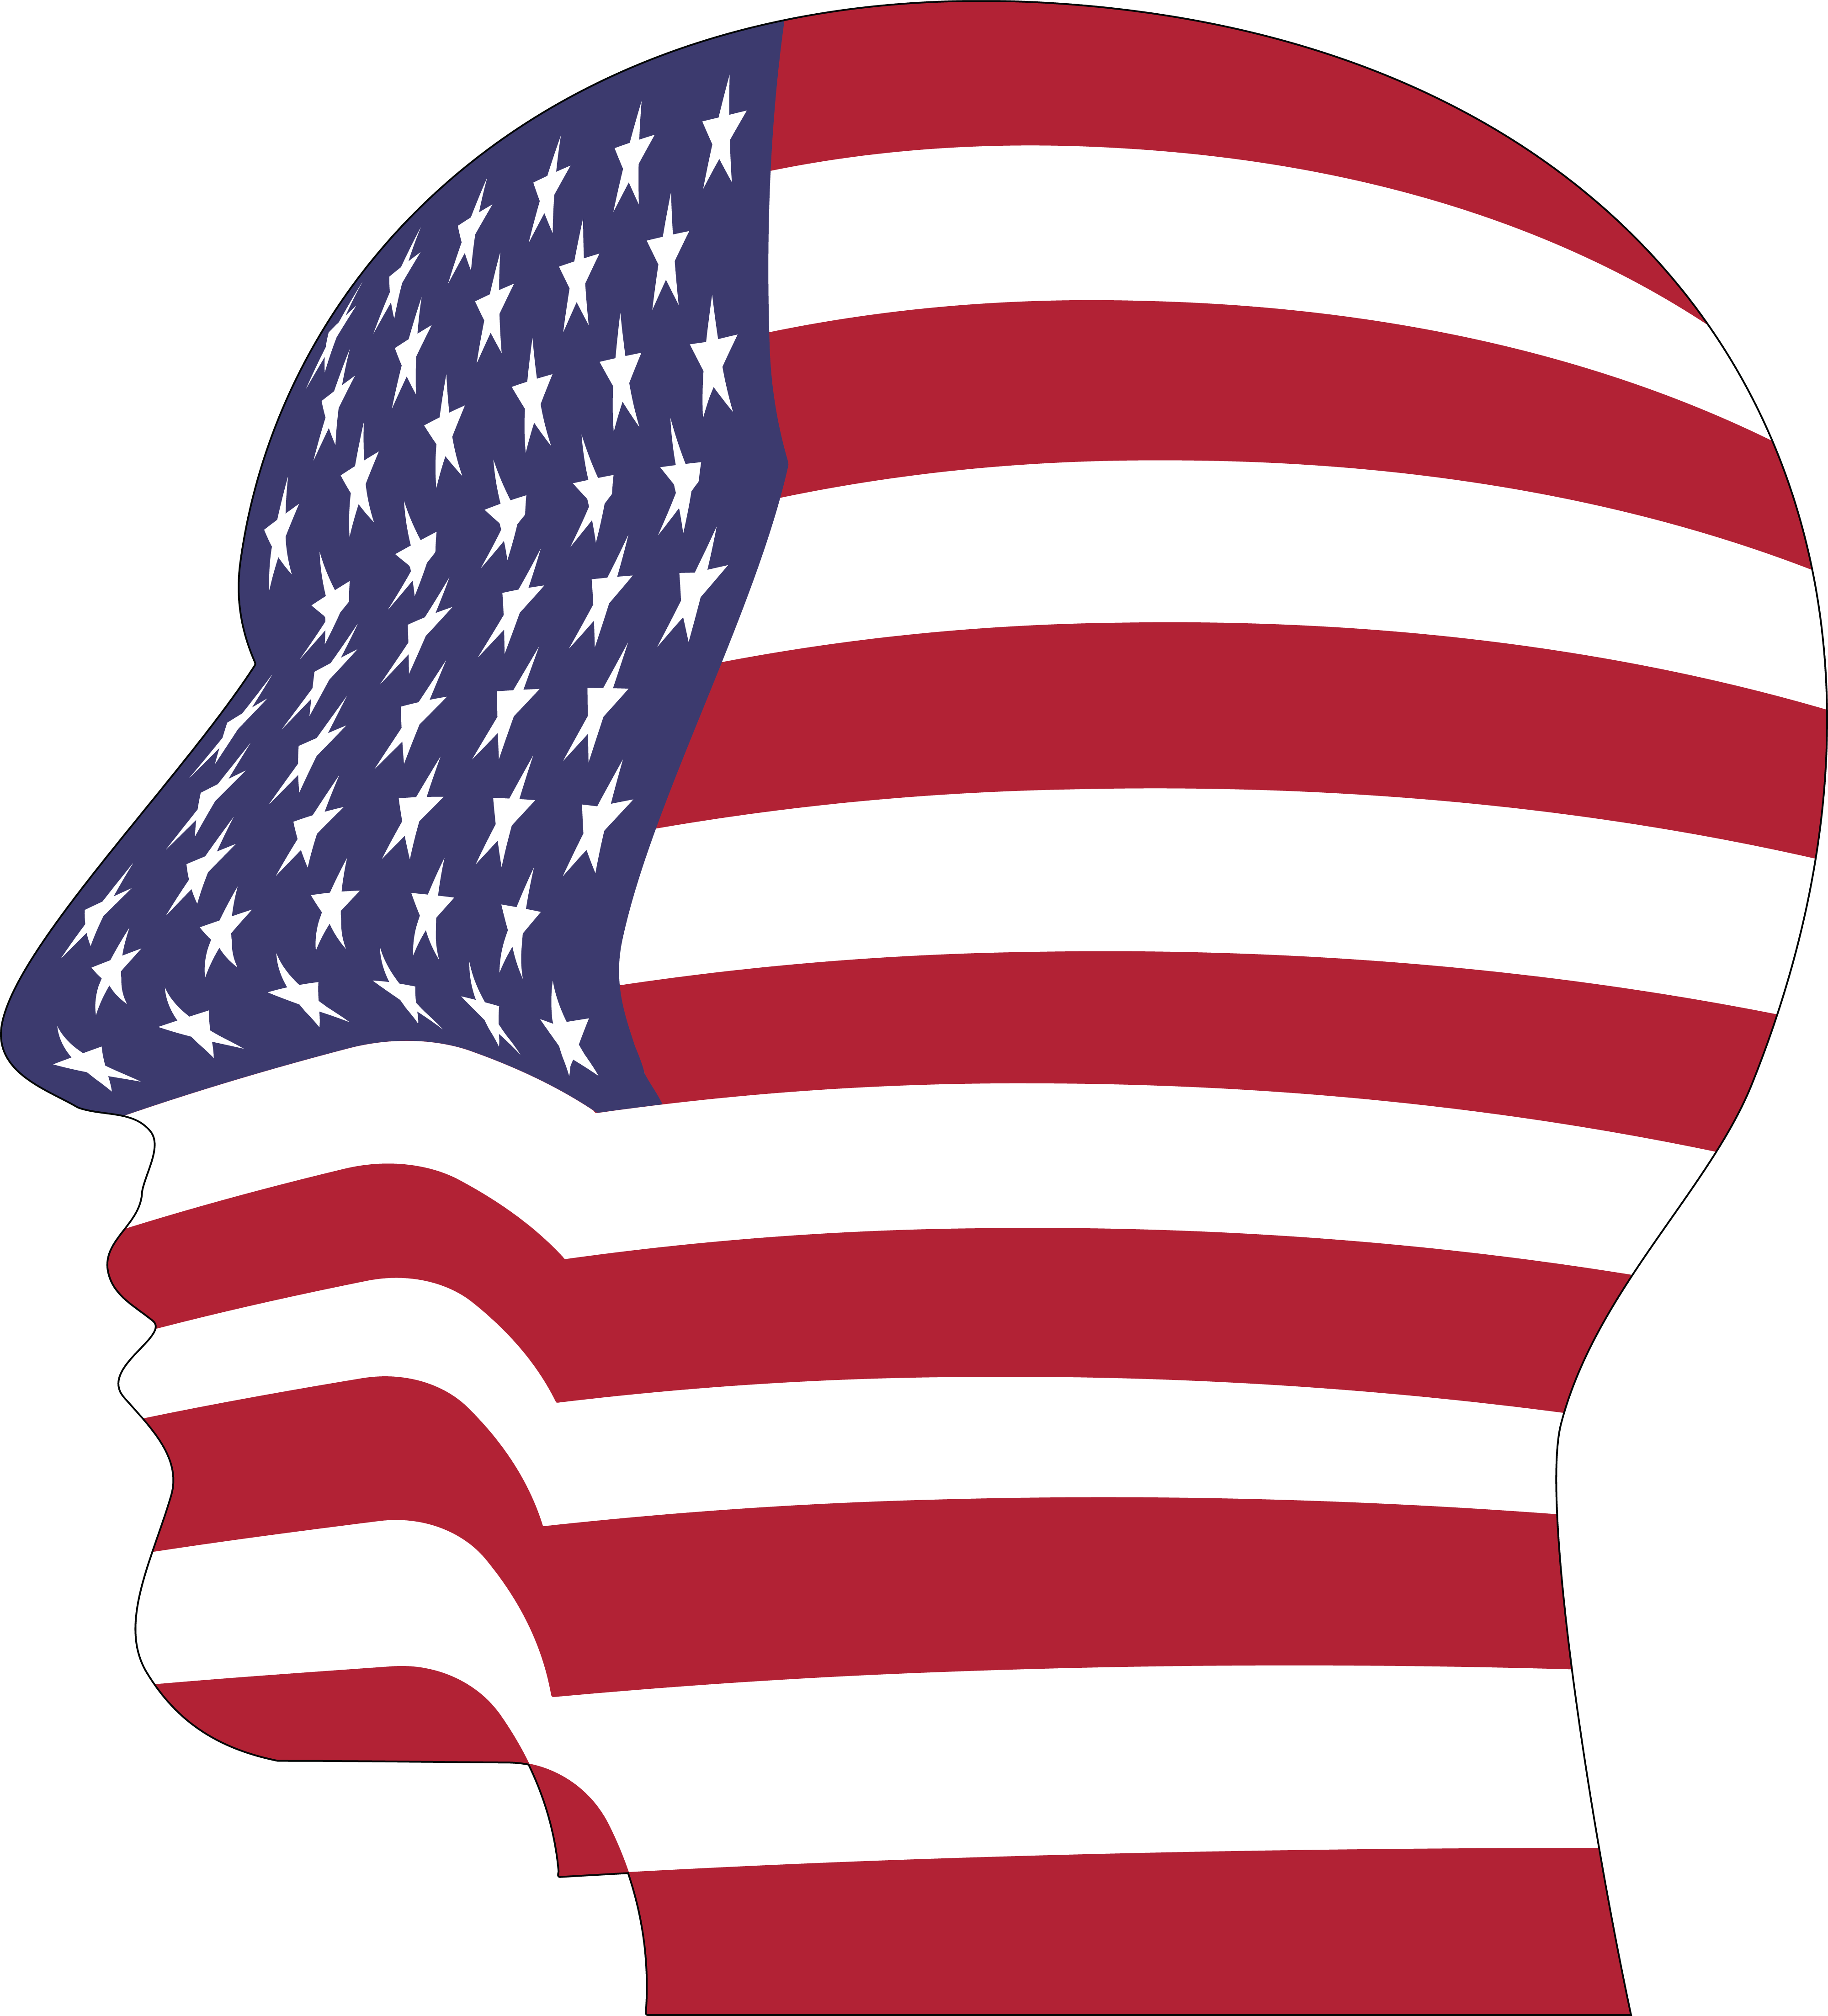 4000x4412 Free Clipart Of A Profiled Head With An American Flag Pattern